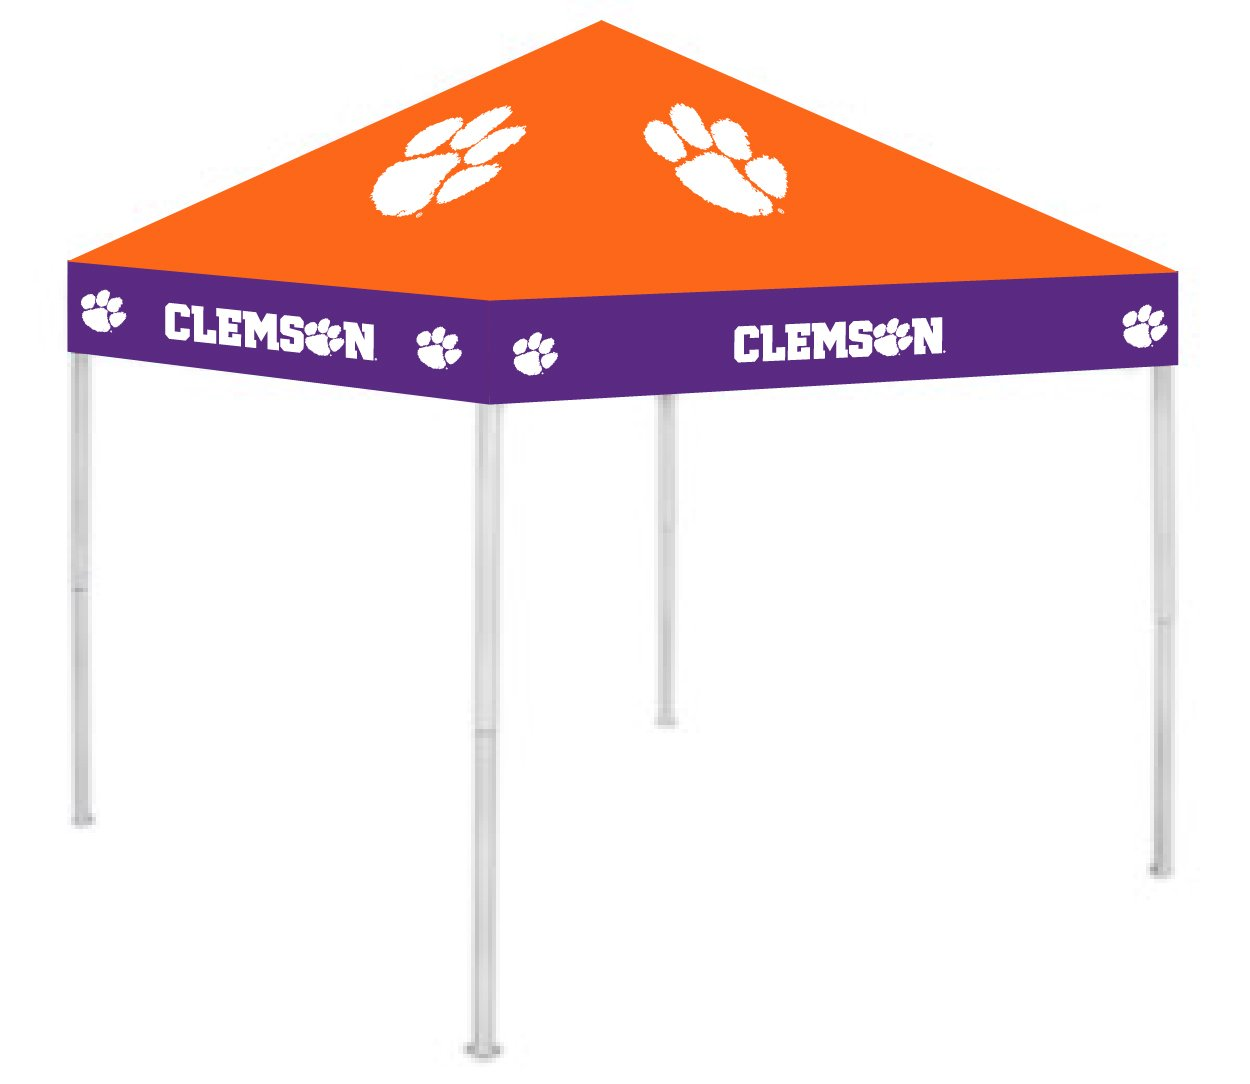 Rivalry RV158-5000 9' x 9' Clemson Ultimate Tailgate Pop-Up Gazebo Canopy Tent B002MY7X8Y 9' x 9'|クレムゾンタイガース クレムゾンタイガース 9' x 9'